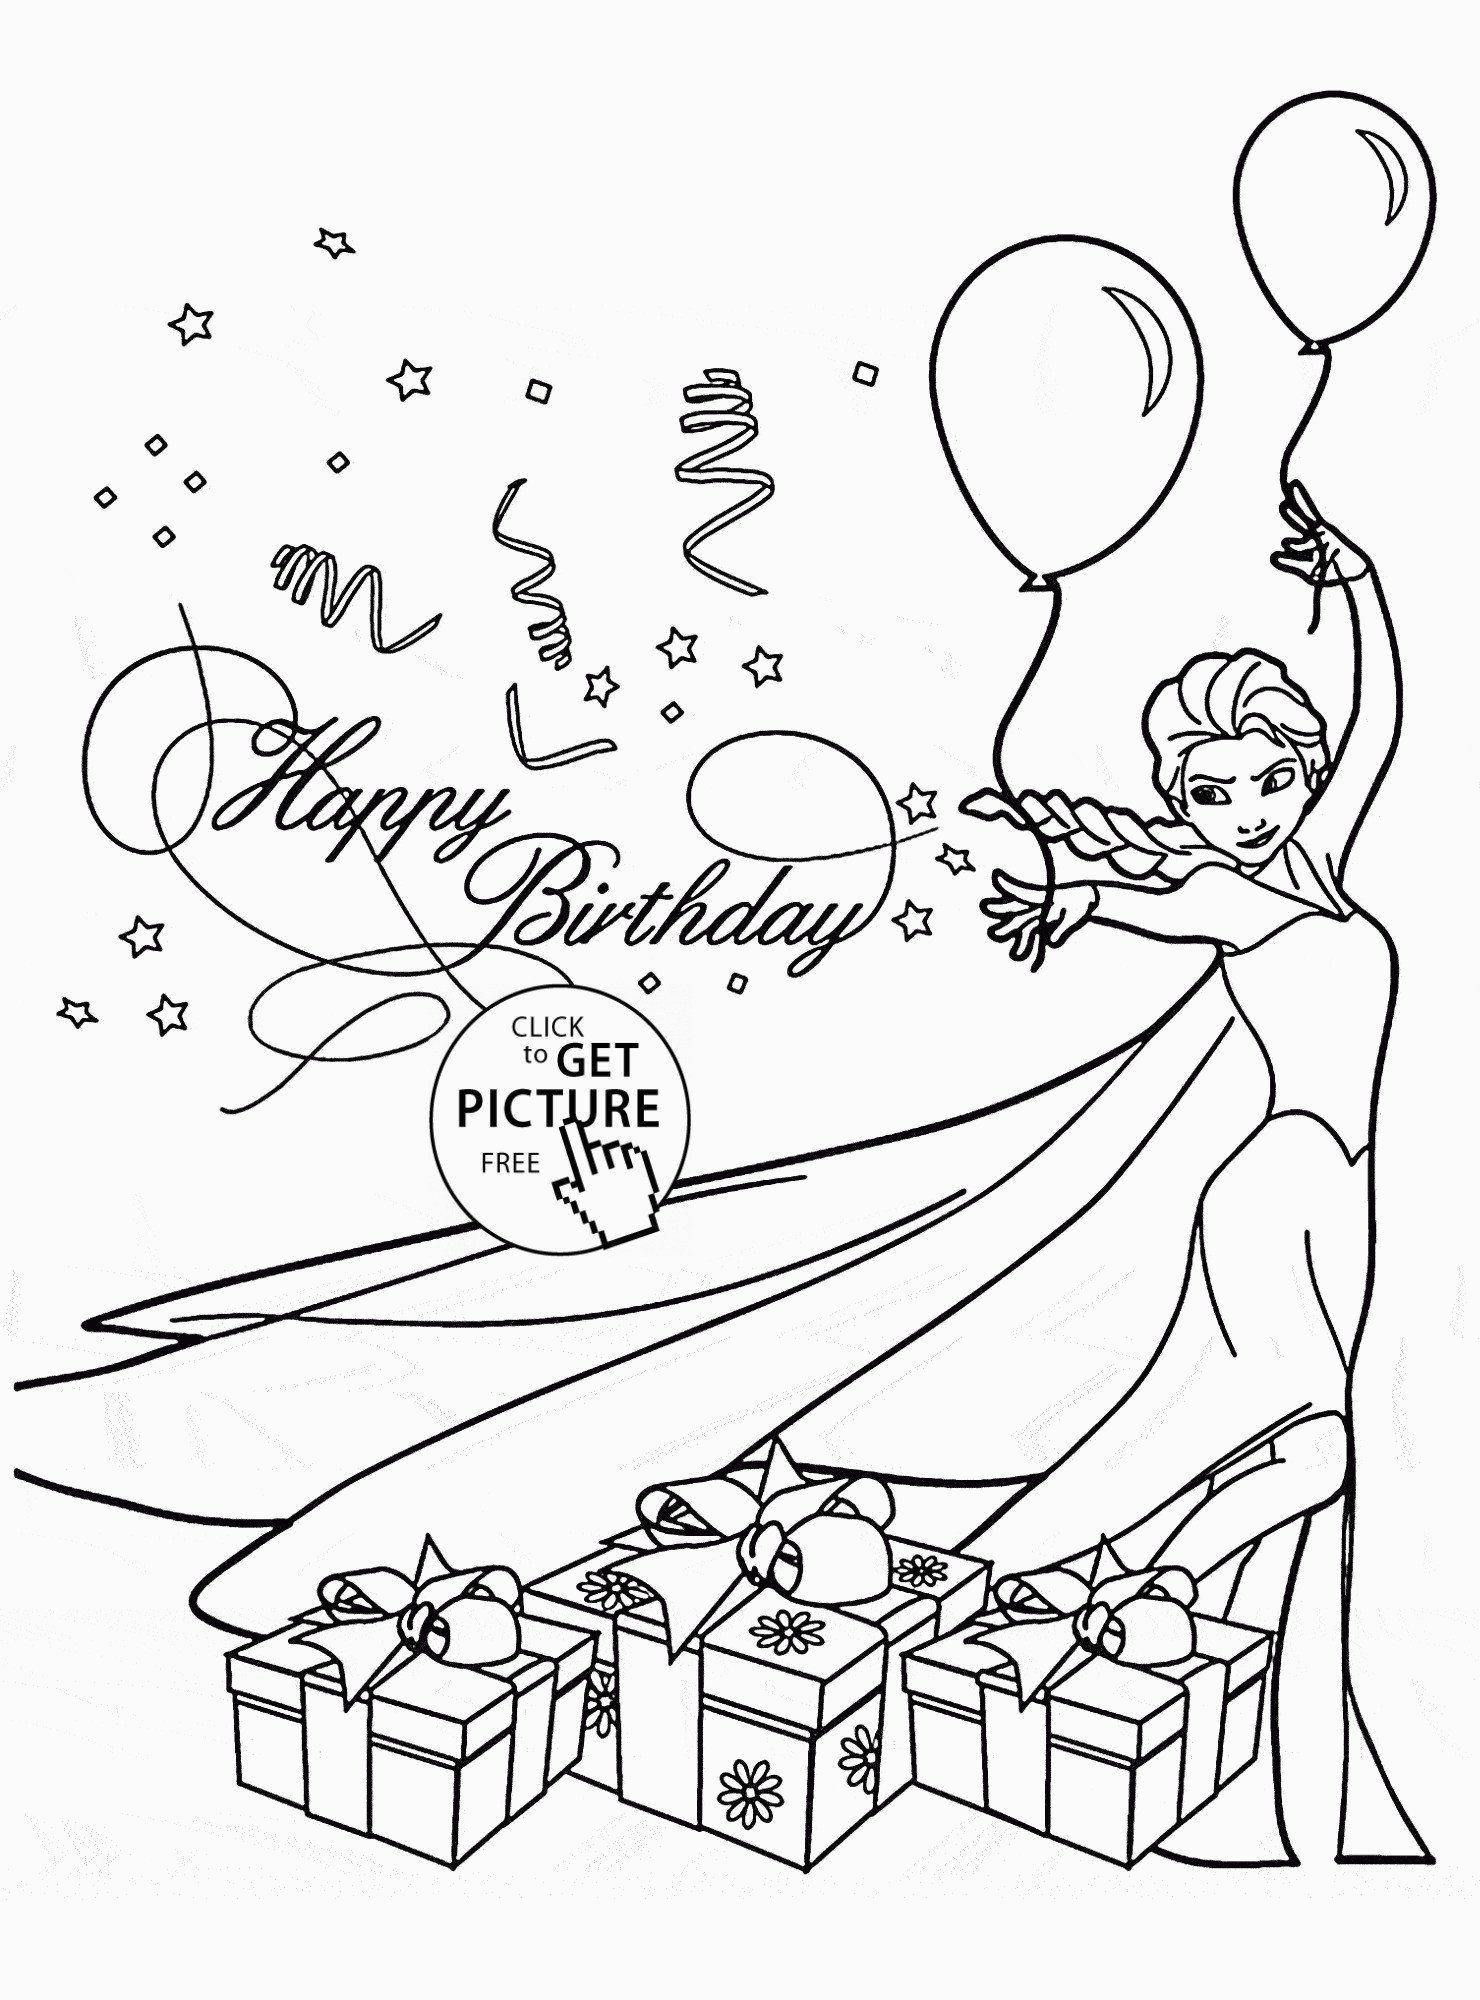 Happy Birthday Brother Coloring Pages Bathroom Lol Surprise Dolls Coloring Pages Print Them For Unicorn Coloring Pages Mermaid Coloring Pages Kitty Coloring